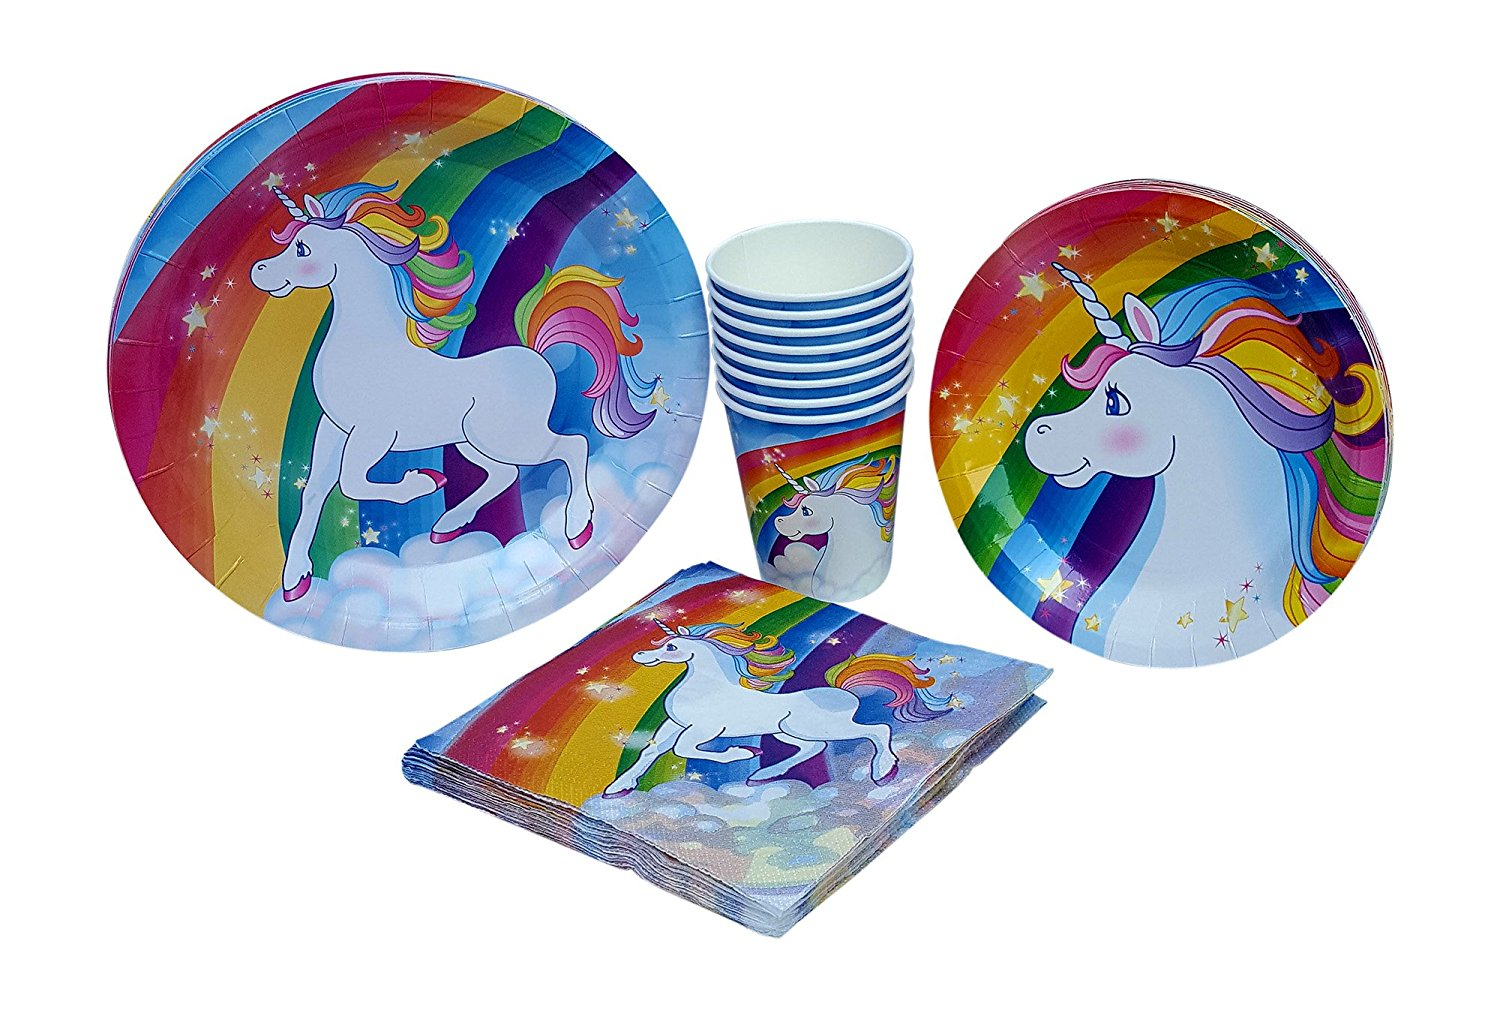 Unicorn Paper Plates Napkins u0026 Cups Birthday Party Supply Pack  sc 1 st  Walmart & Unicorn Paper Plates Napkins u0026 Cups Birthday Party Supply Pack ...